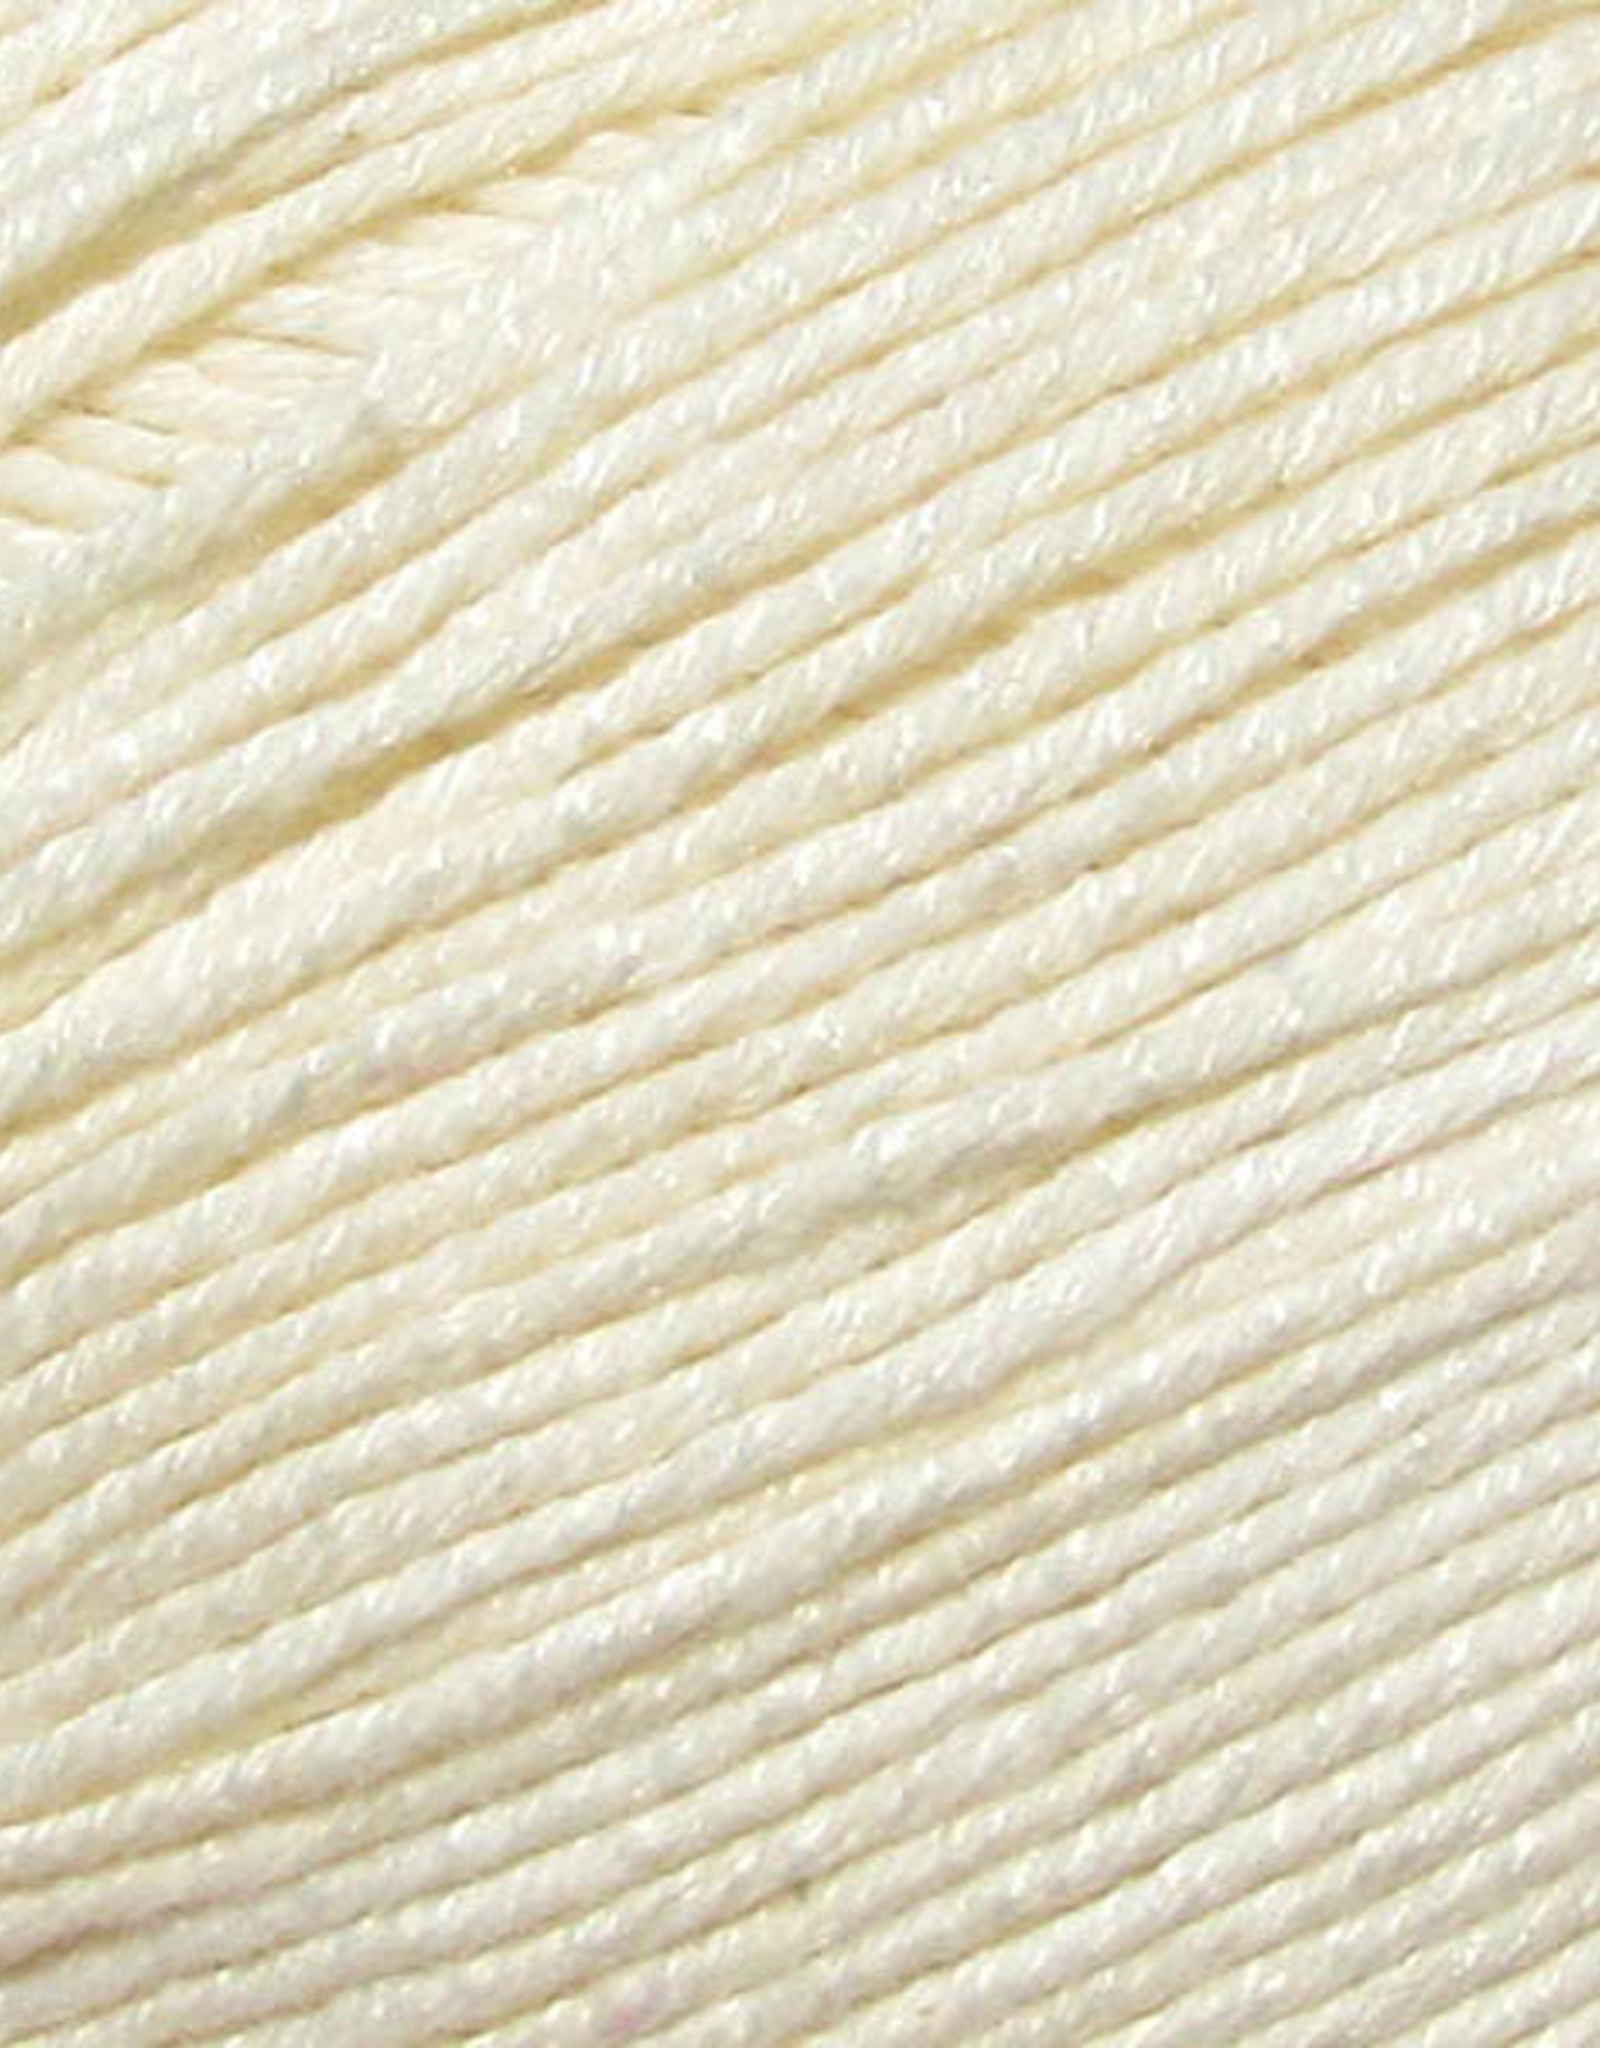 Universal Yarns Bamboo Pop 100g 102 cream